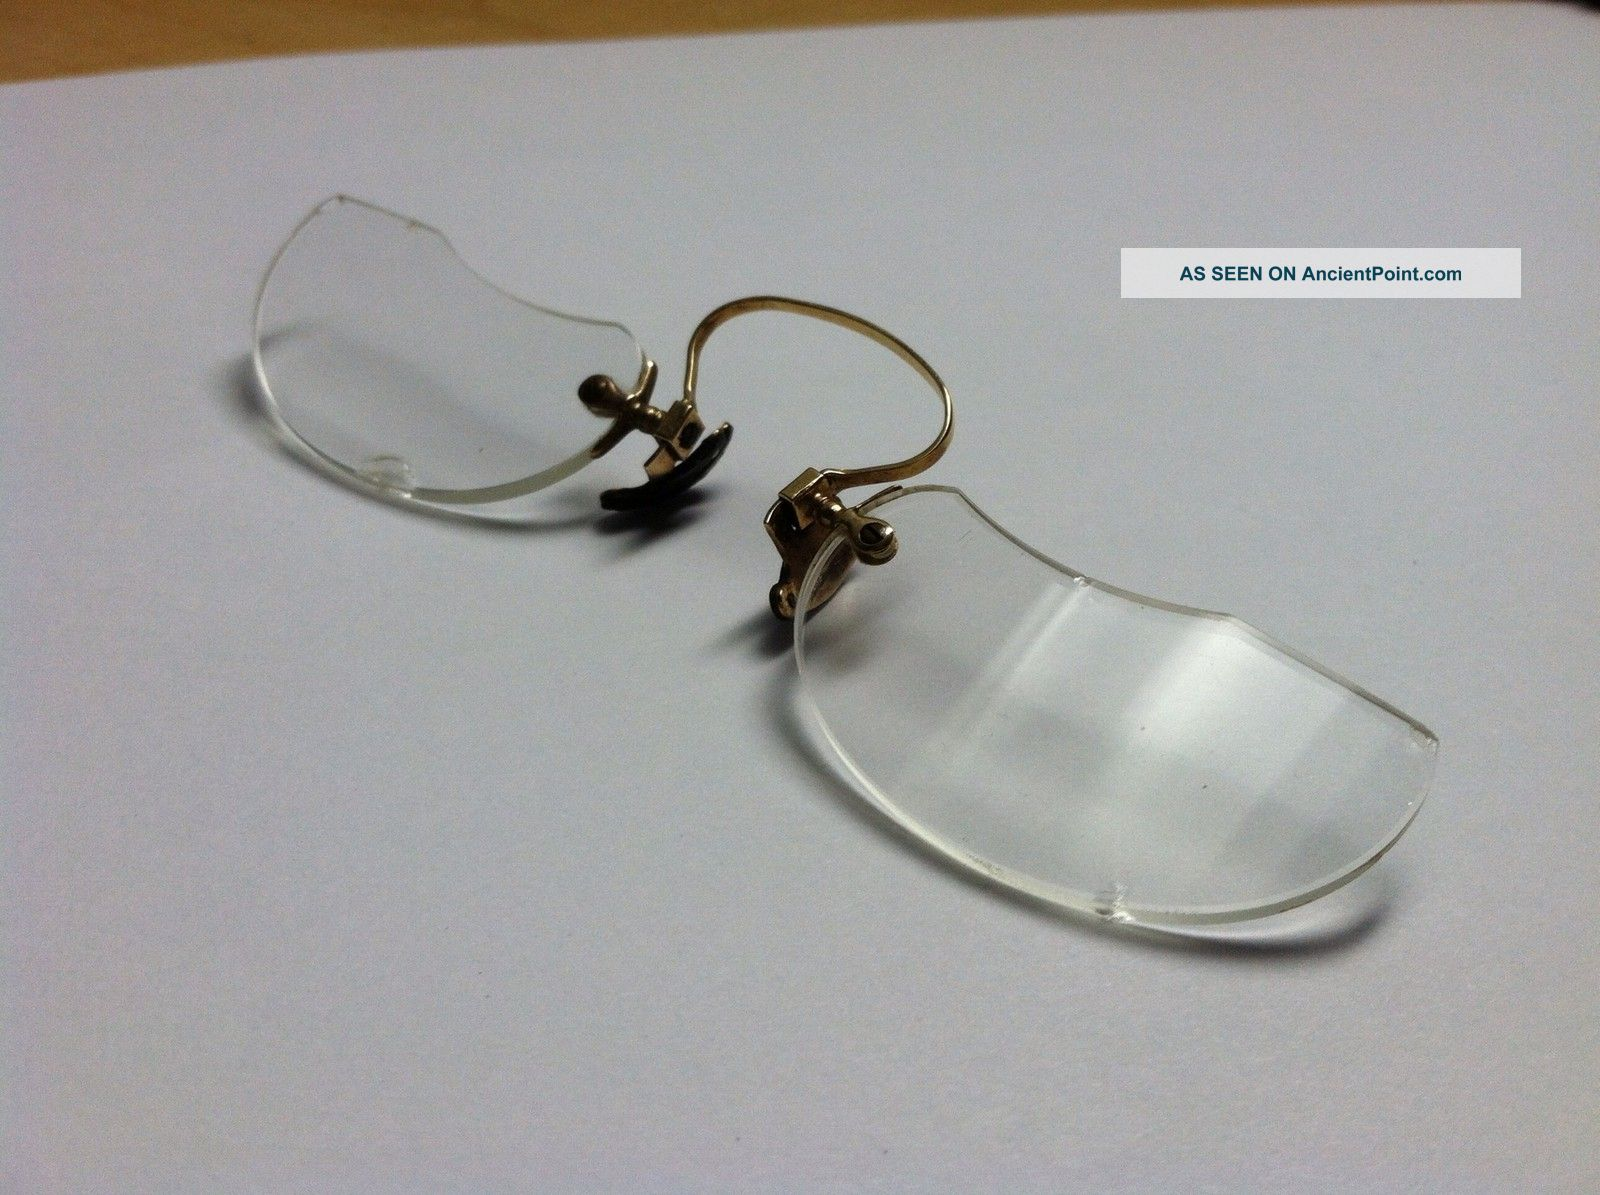 Early 1900s Antique 10k Gold Spectacles By Dachtera - Optical photo